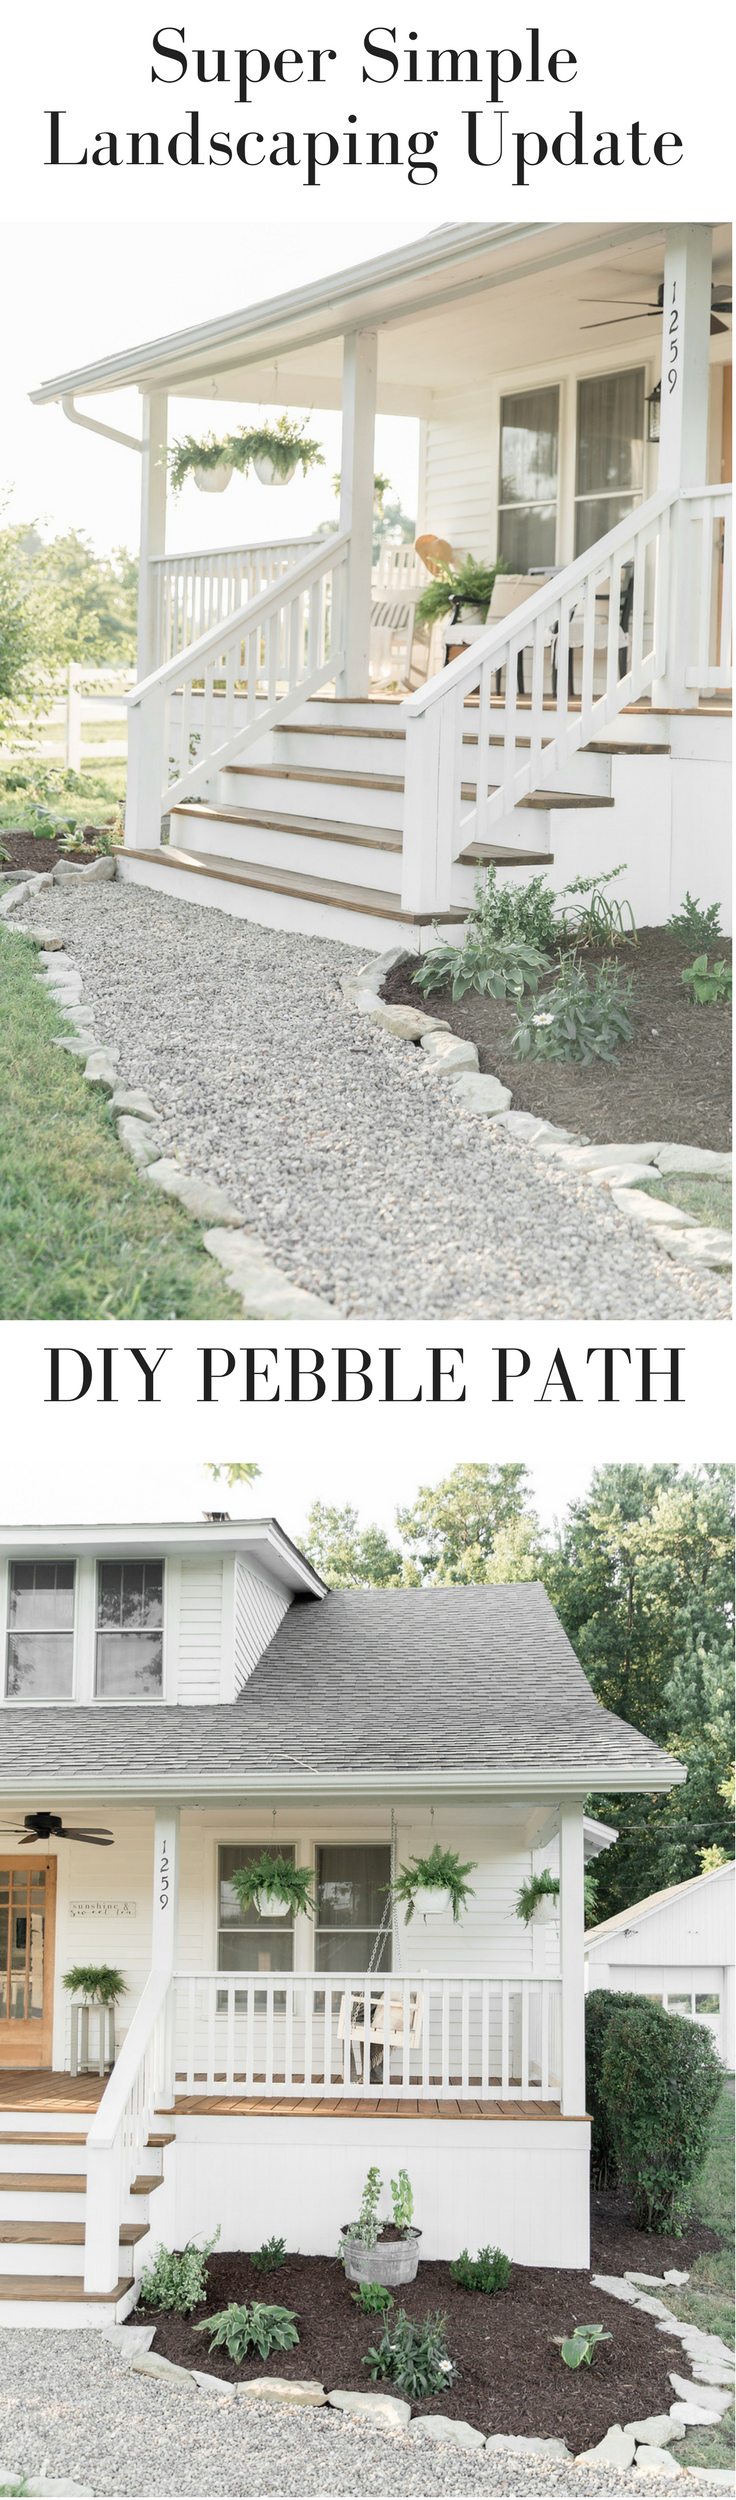 How To Update A Cracked Sidewalk With DIY Gravel Path Farmhouse LandscapingBackyard